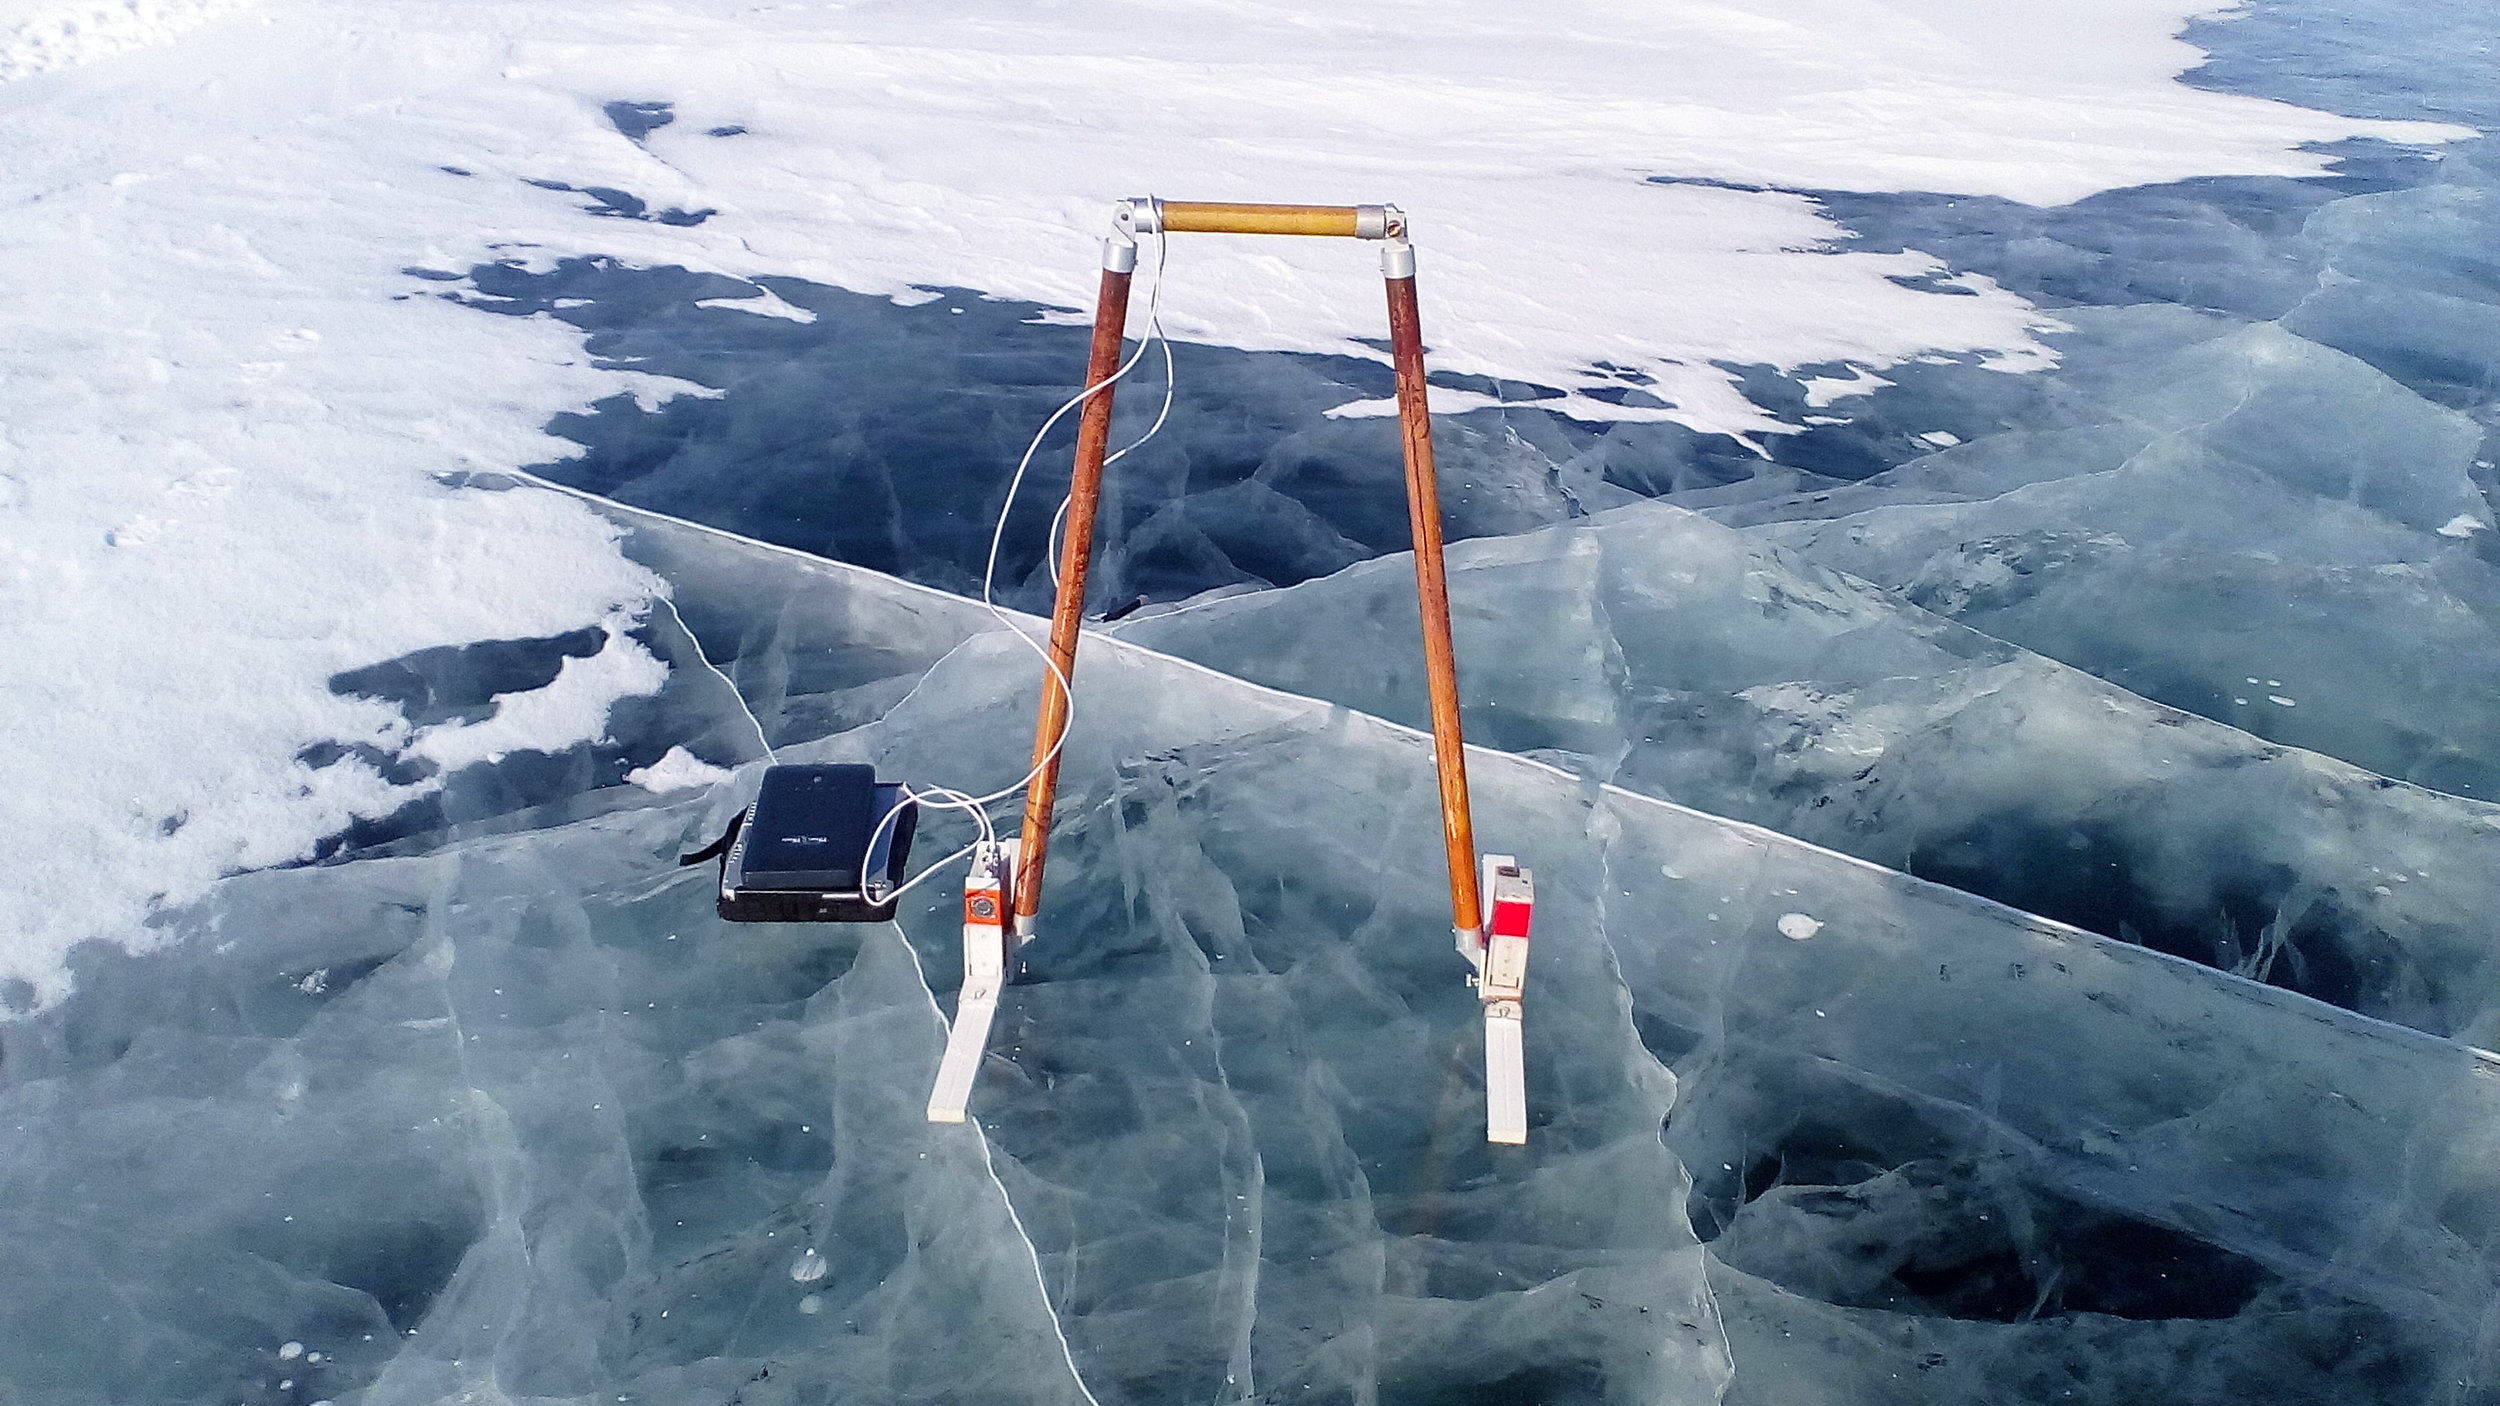 Fig. 3. Georadar GROT 12H with antennas 0.5 meters on the ice of the lake.